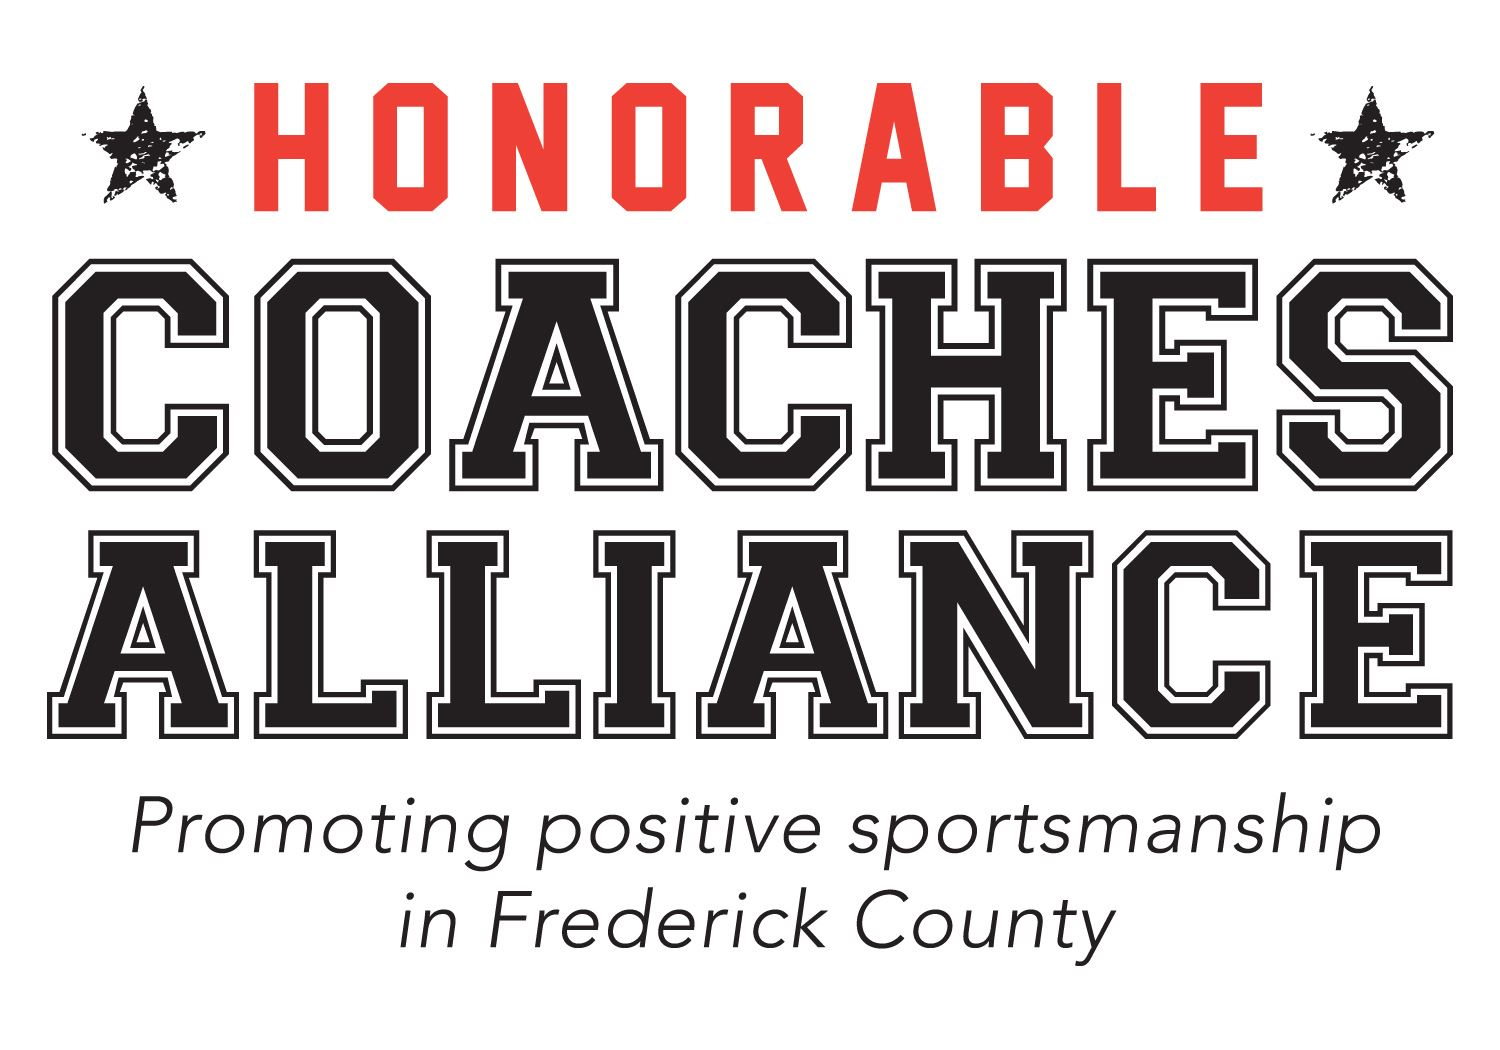 Honorable Coaches Alliance